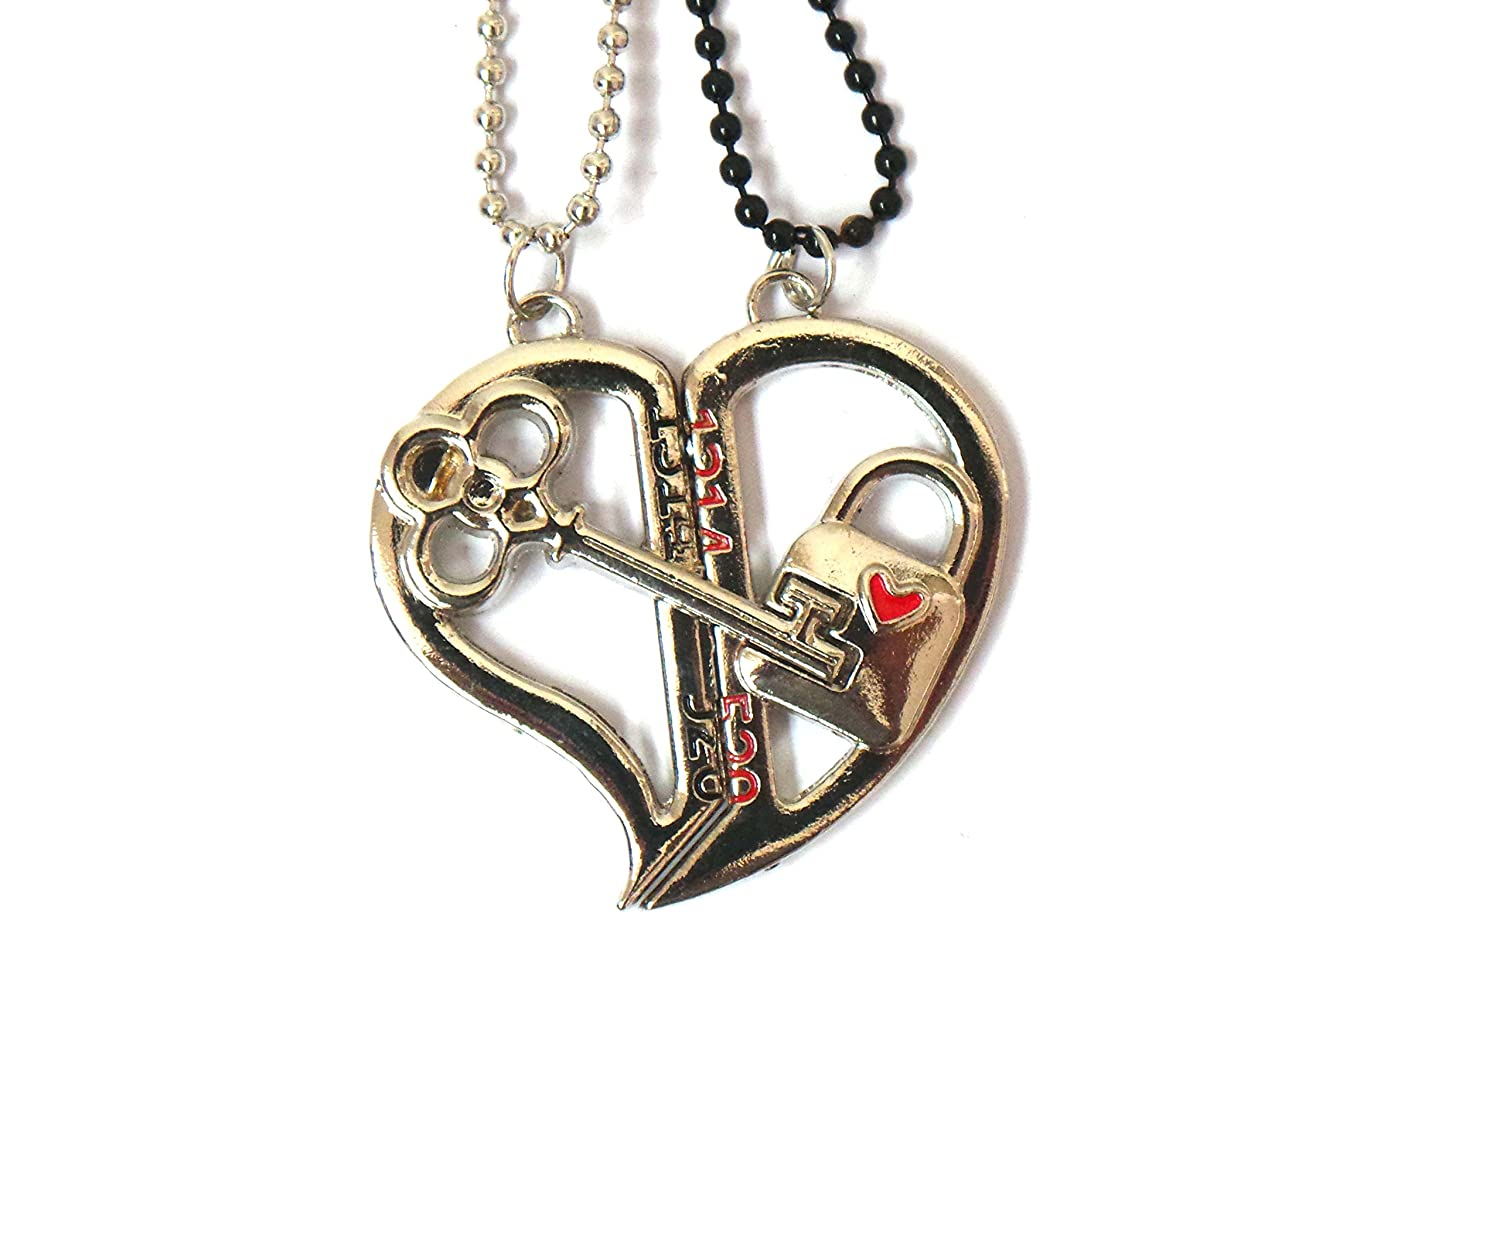 locket hd wallpapers of love images wallpaper lockets famous beautiful